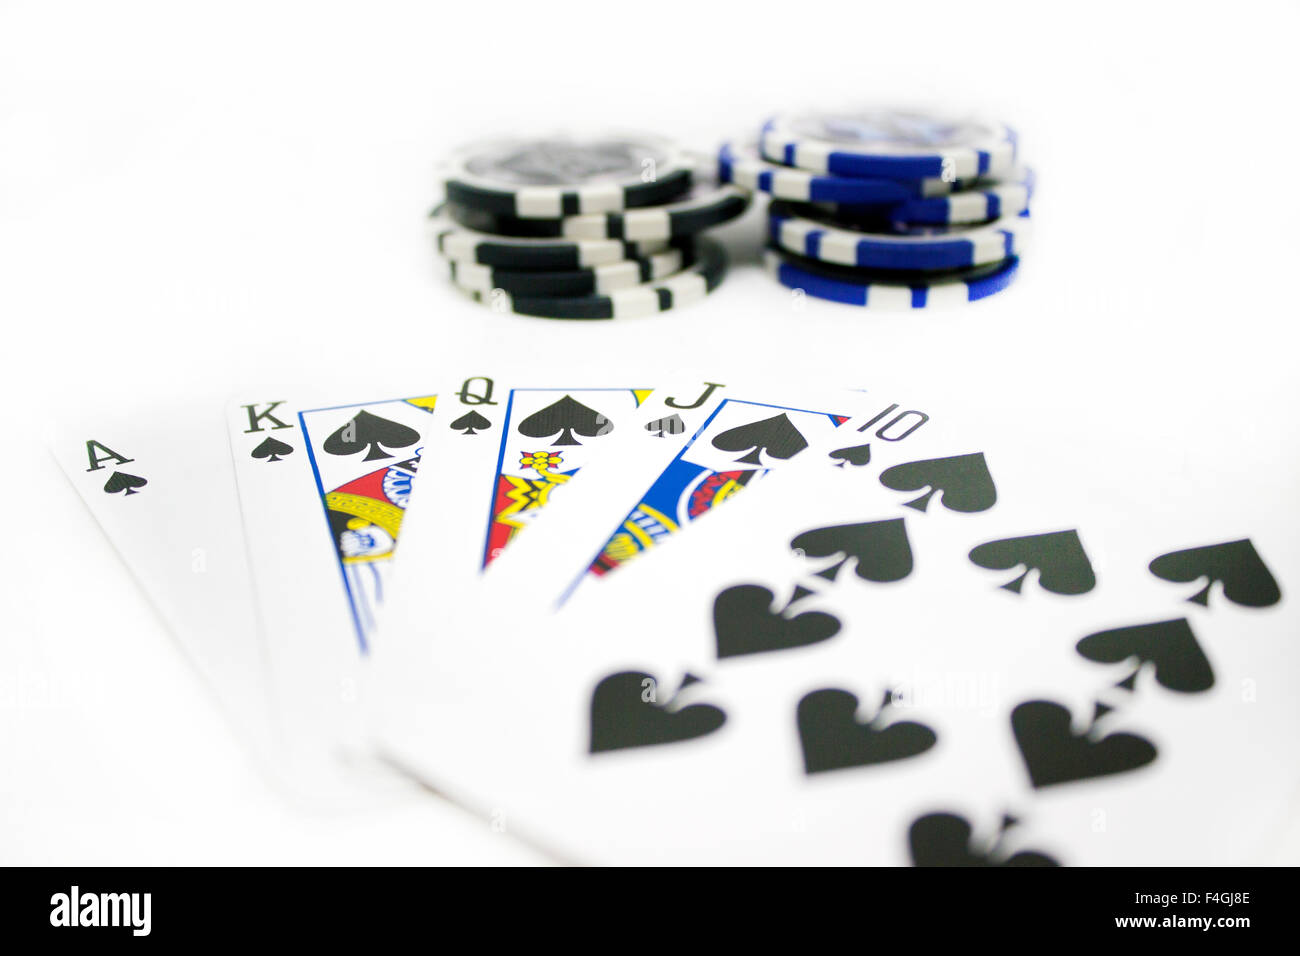 Casino gambling chips stacked and isolated on white background. - Stock Image